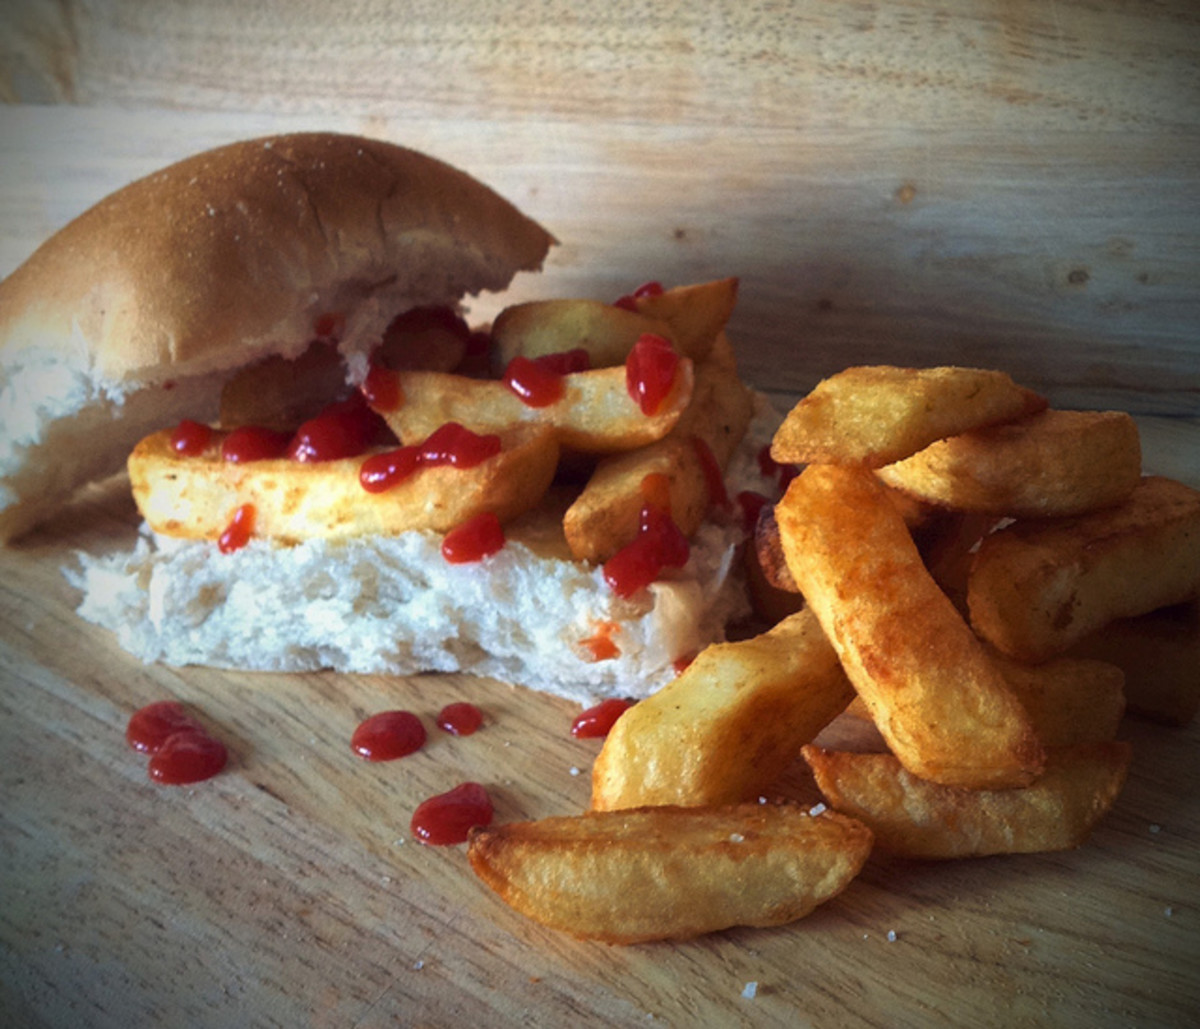 Chip butty with ketchup